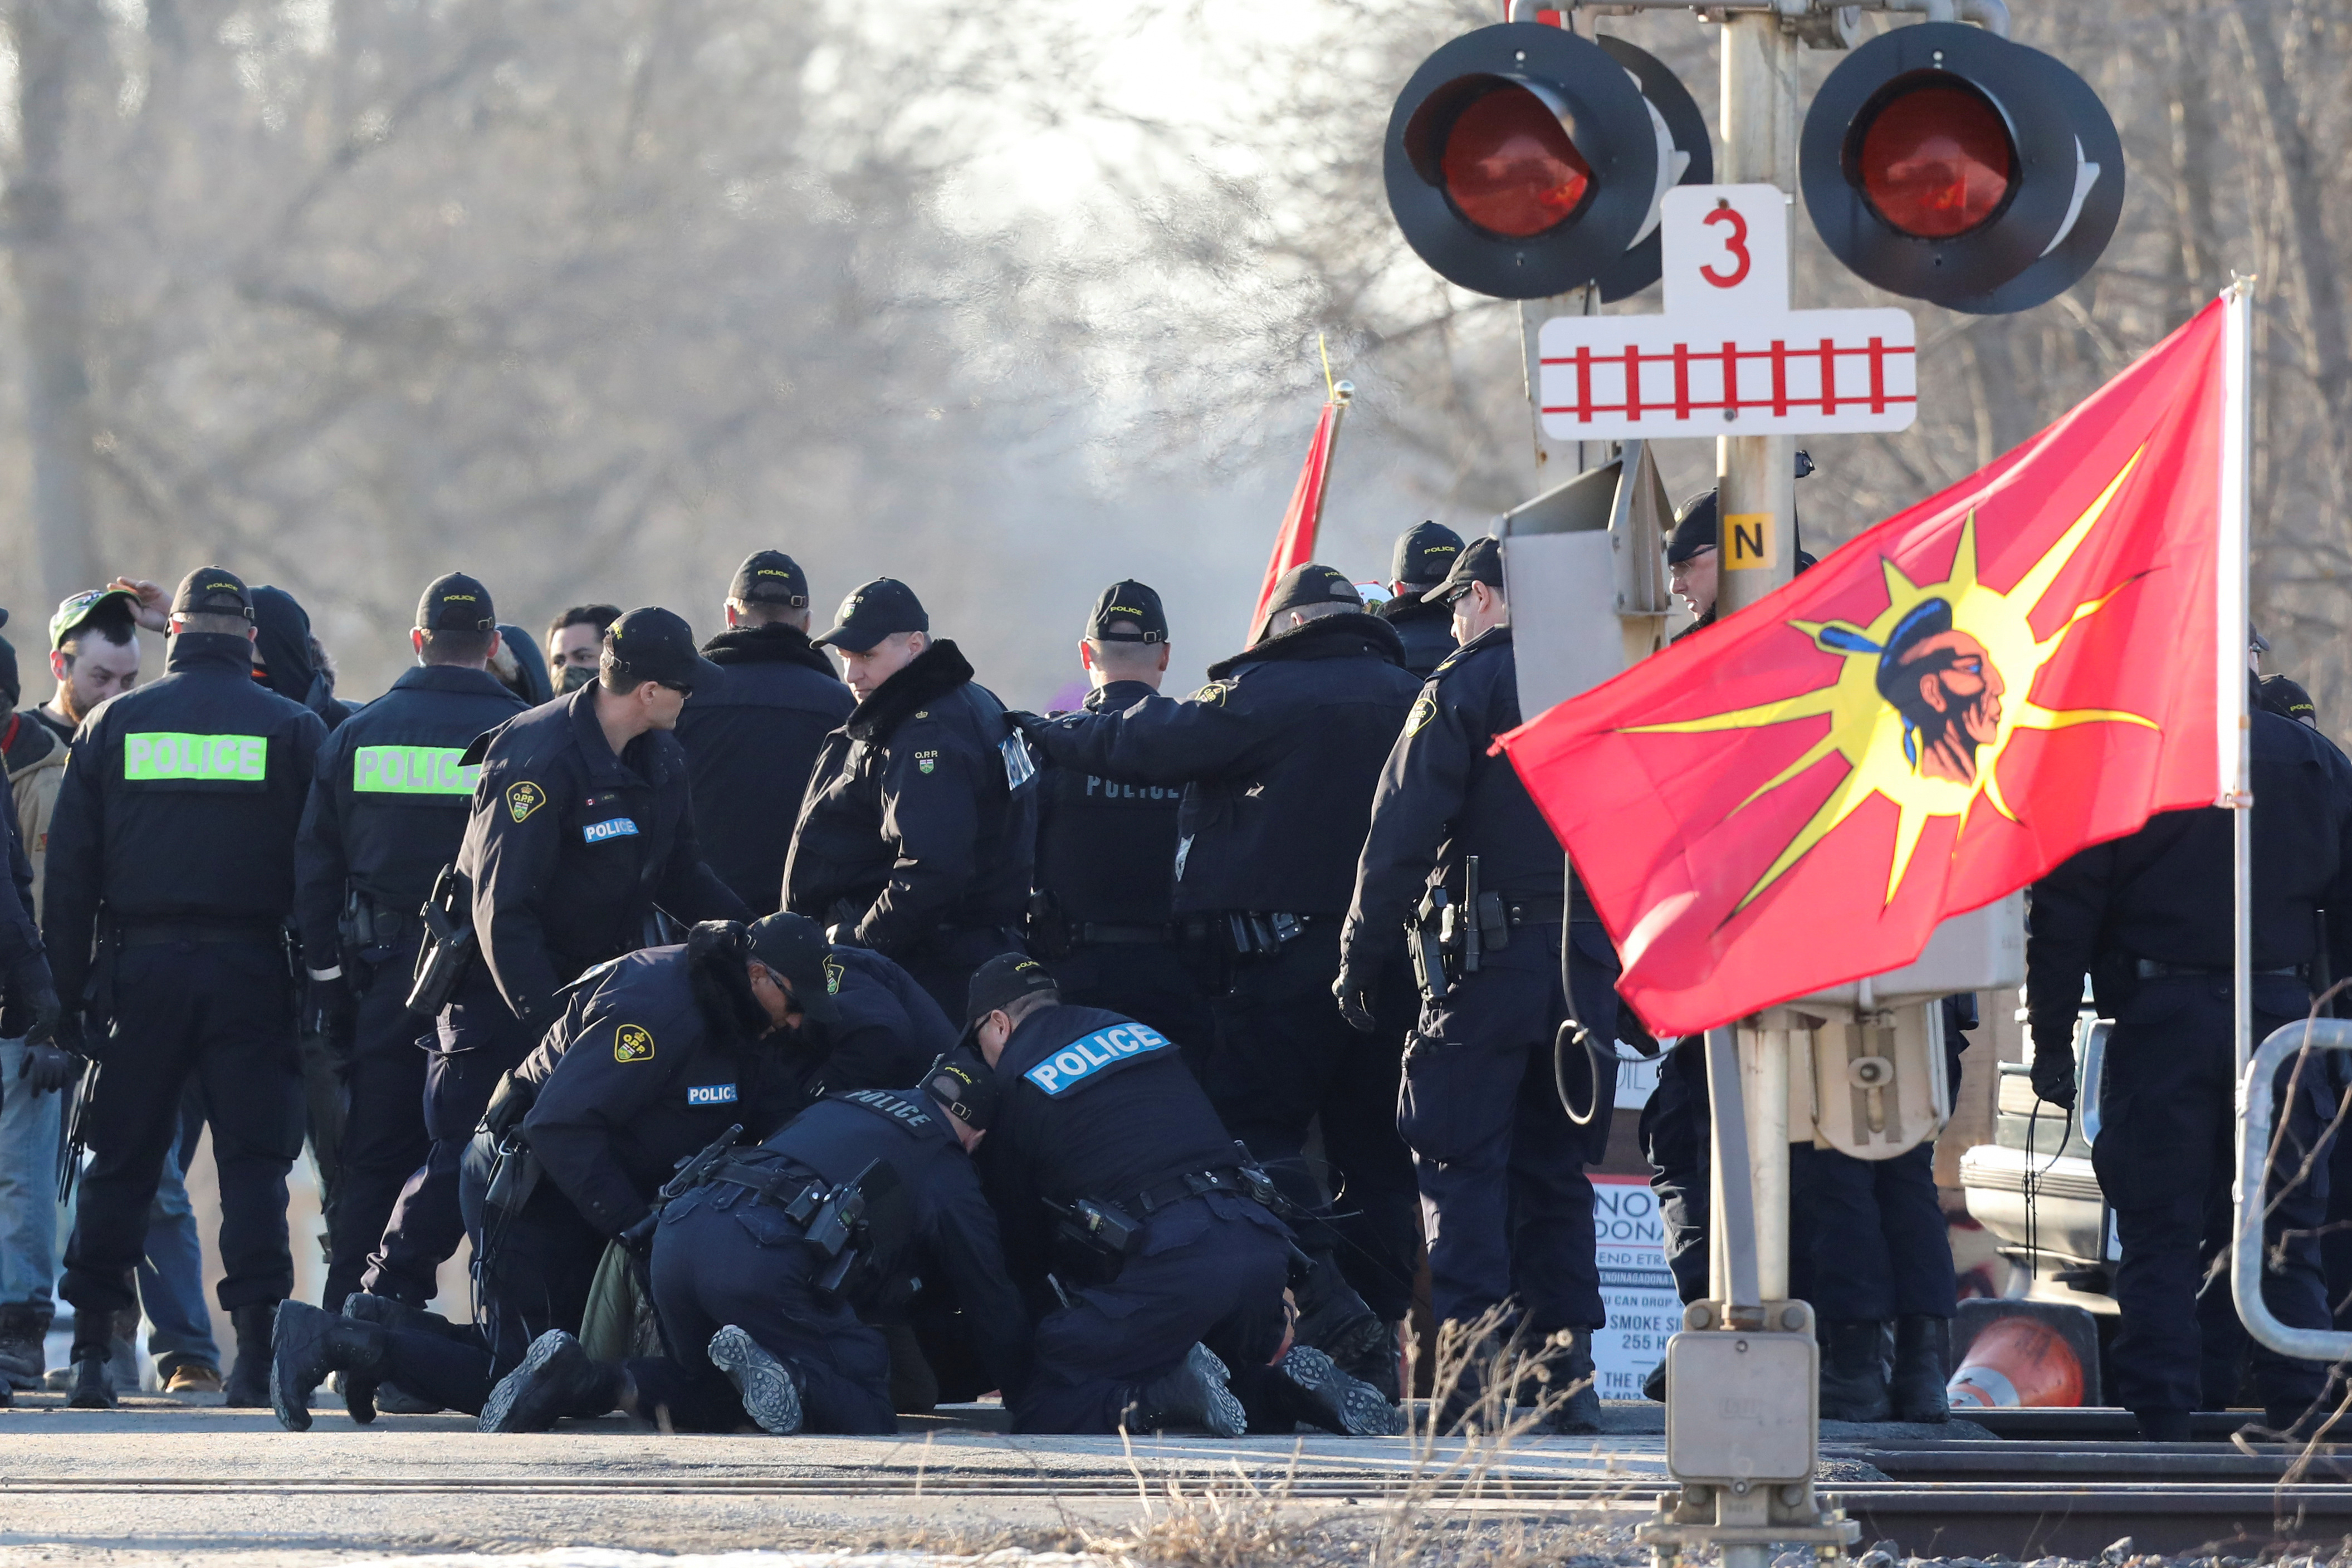 Police officers make an arrest during a raid on a Tyendinaga Mohawk Territory camp next to a railway crossing in Tyendinaga, Ontario, Canada Feb. 24, 2020. REUTERS/Chris Helgren